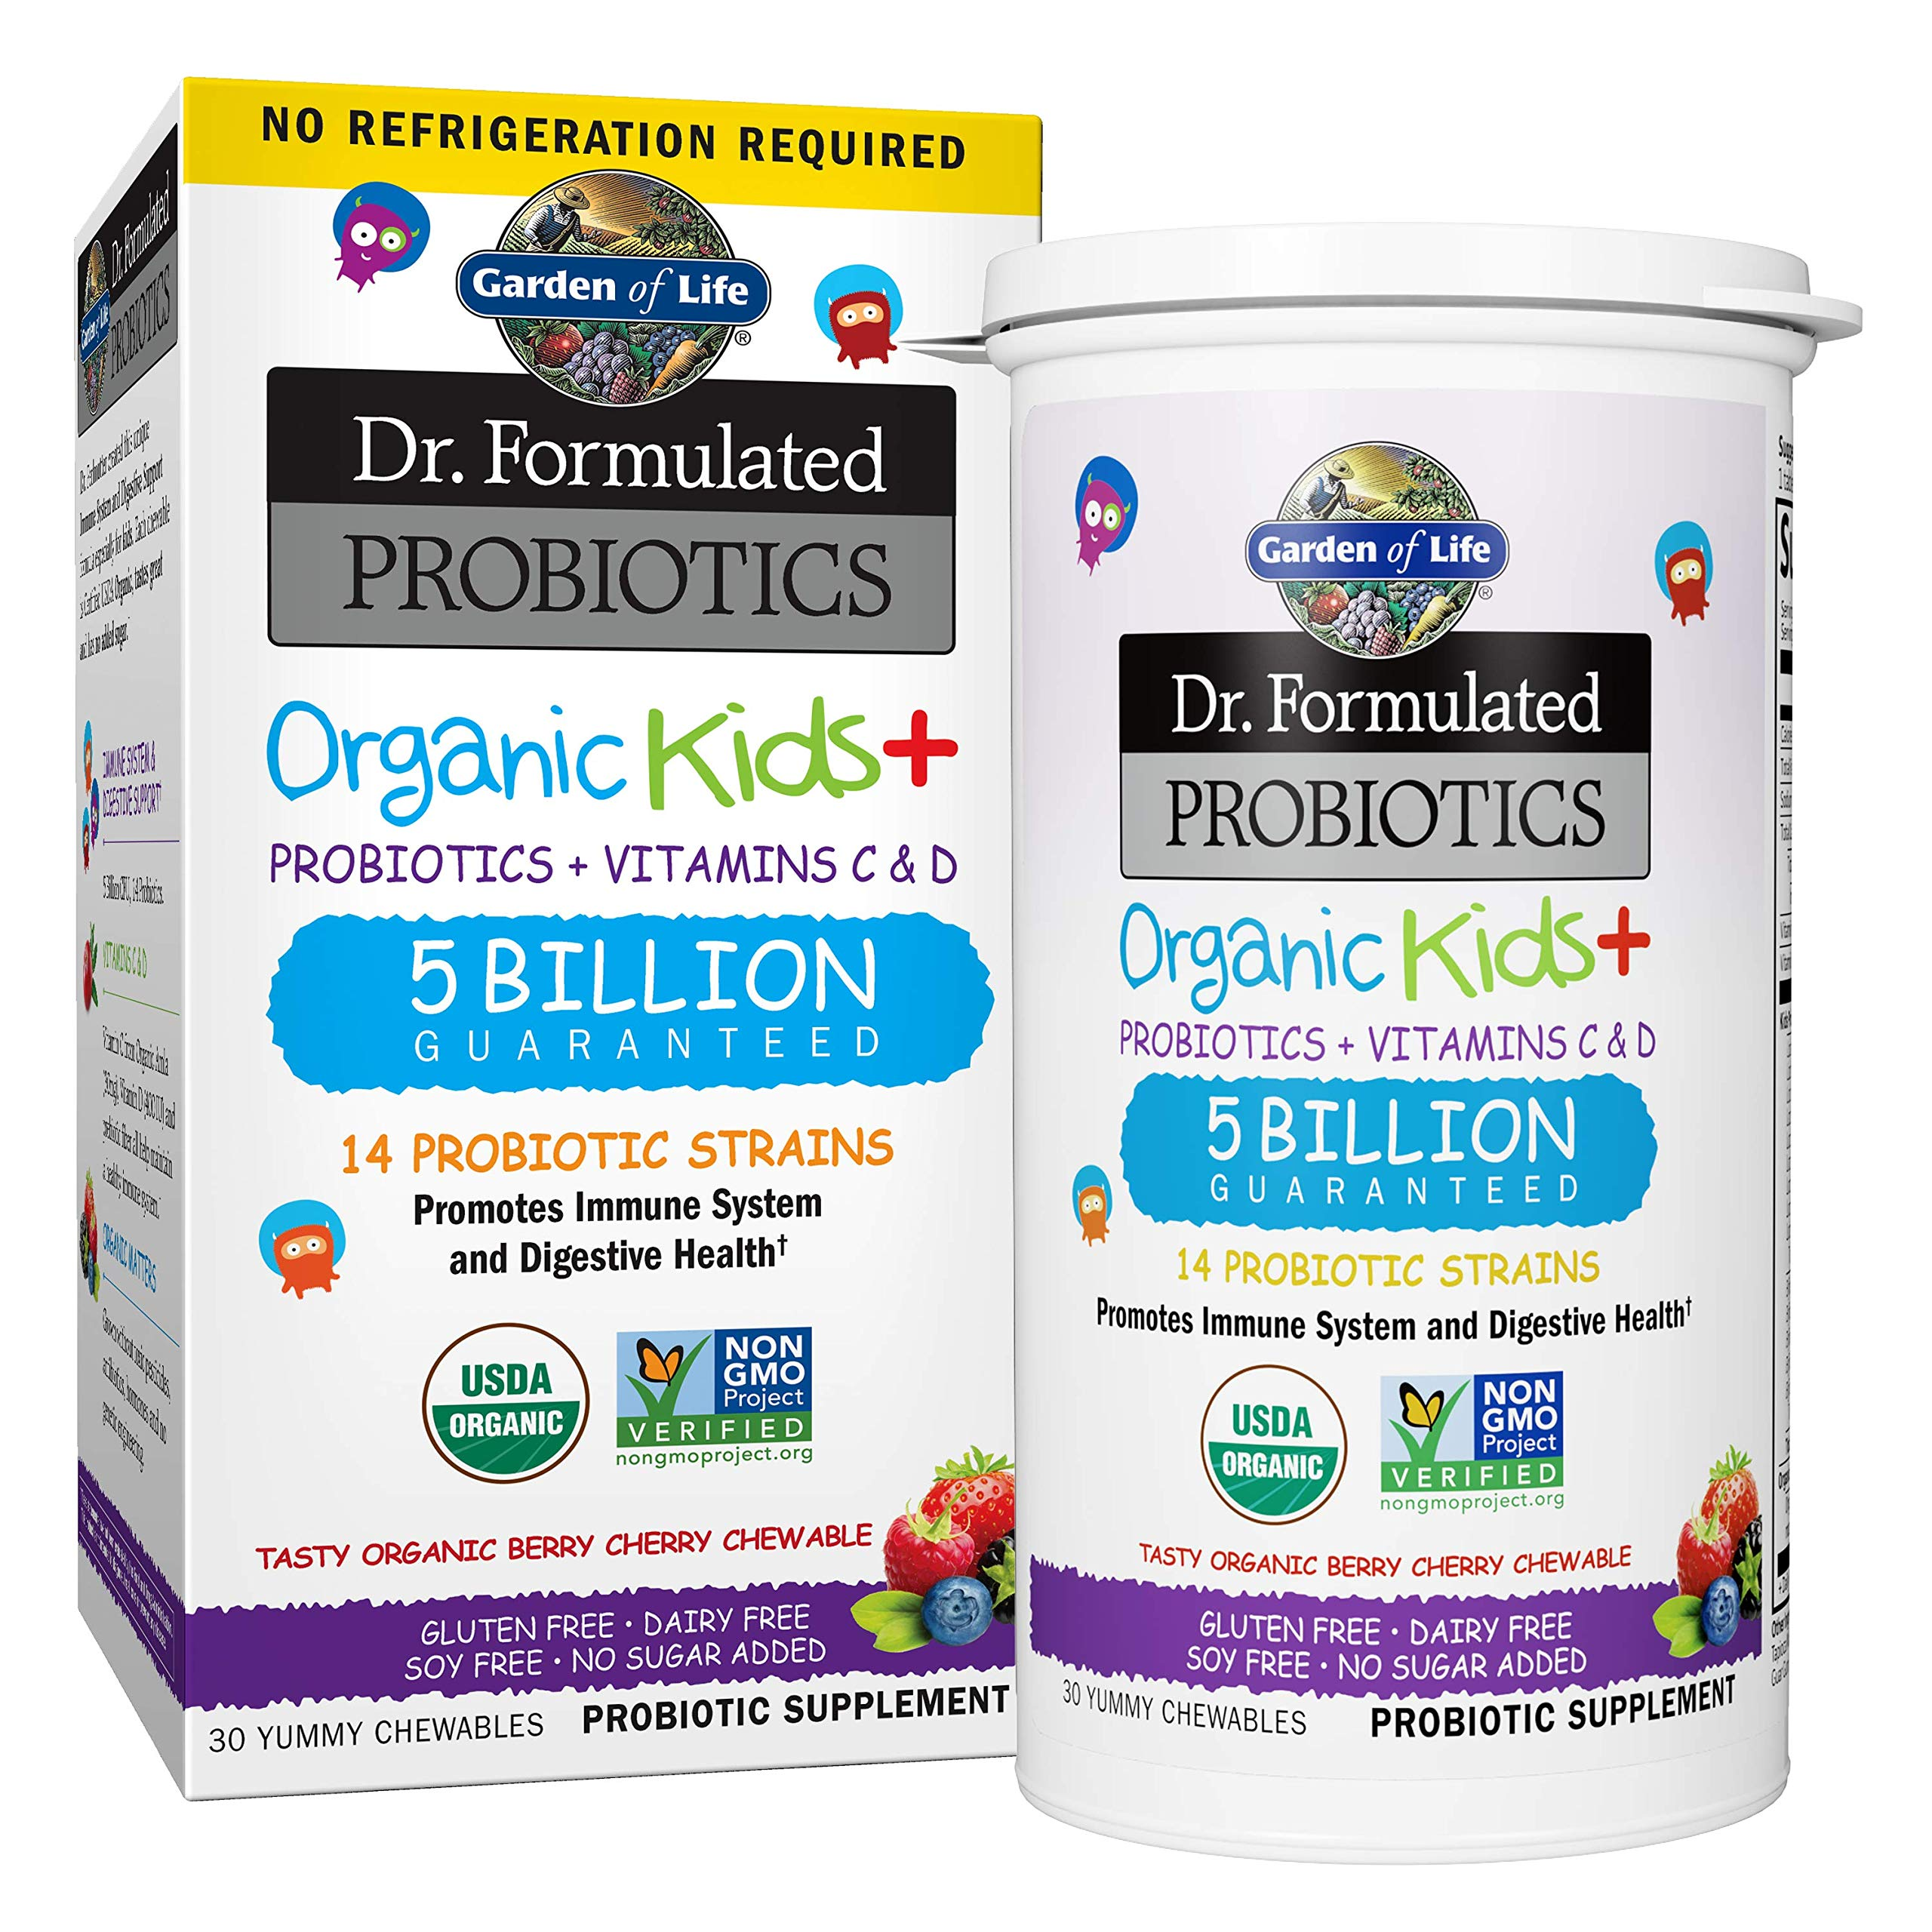 Garden of Life-Dr. Formulated Probiotics Organic Kids-Berry Cherry-Acidophilus and Probiotic Promotes Immune System,Digestive Health-Gluten,Dairy,Soy-Free,No Sugar Added-Chewables (30 Count) by Garden of Life